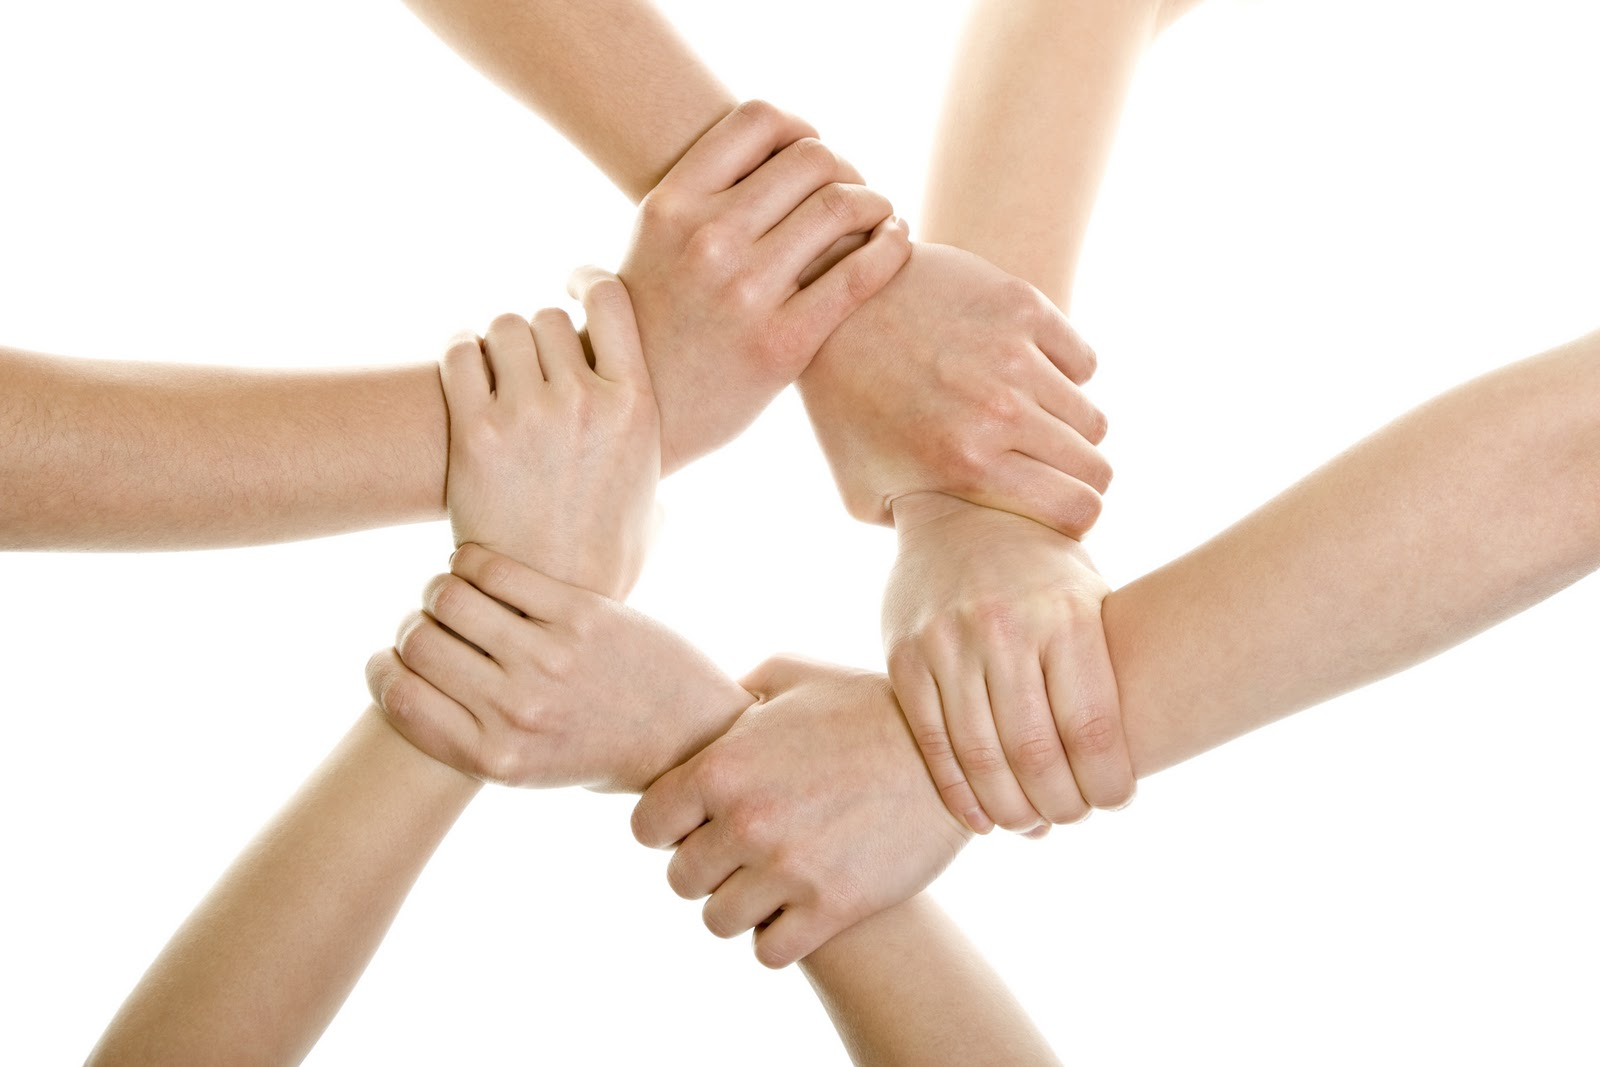 circles of community online resources for helping those in need